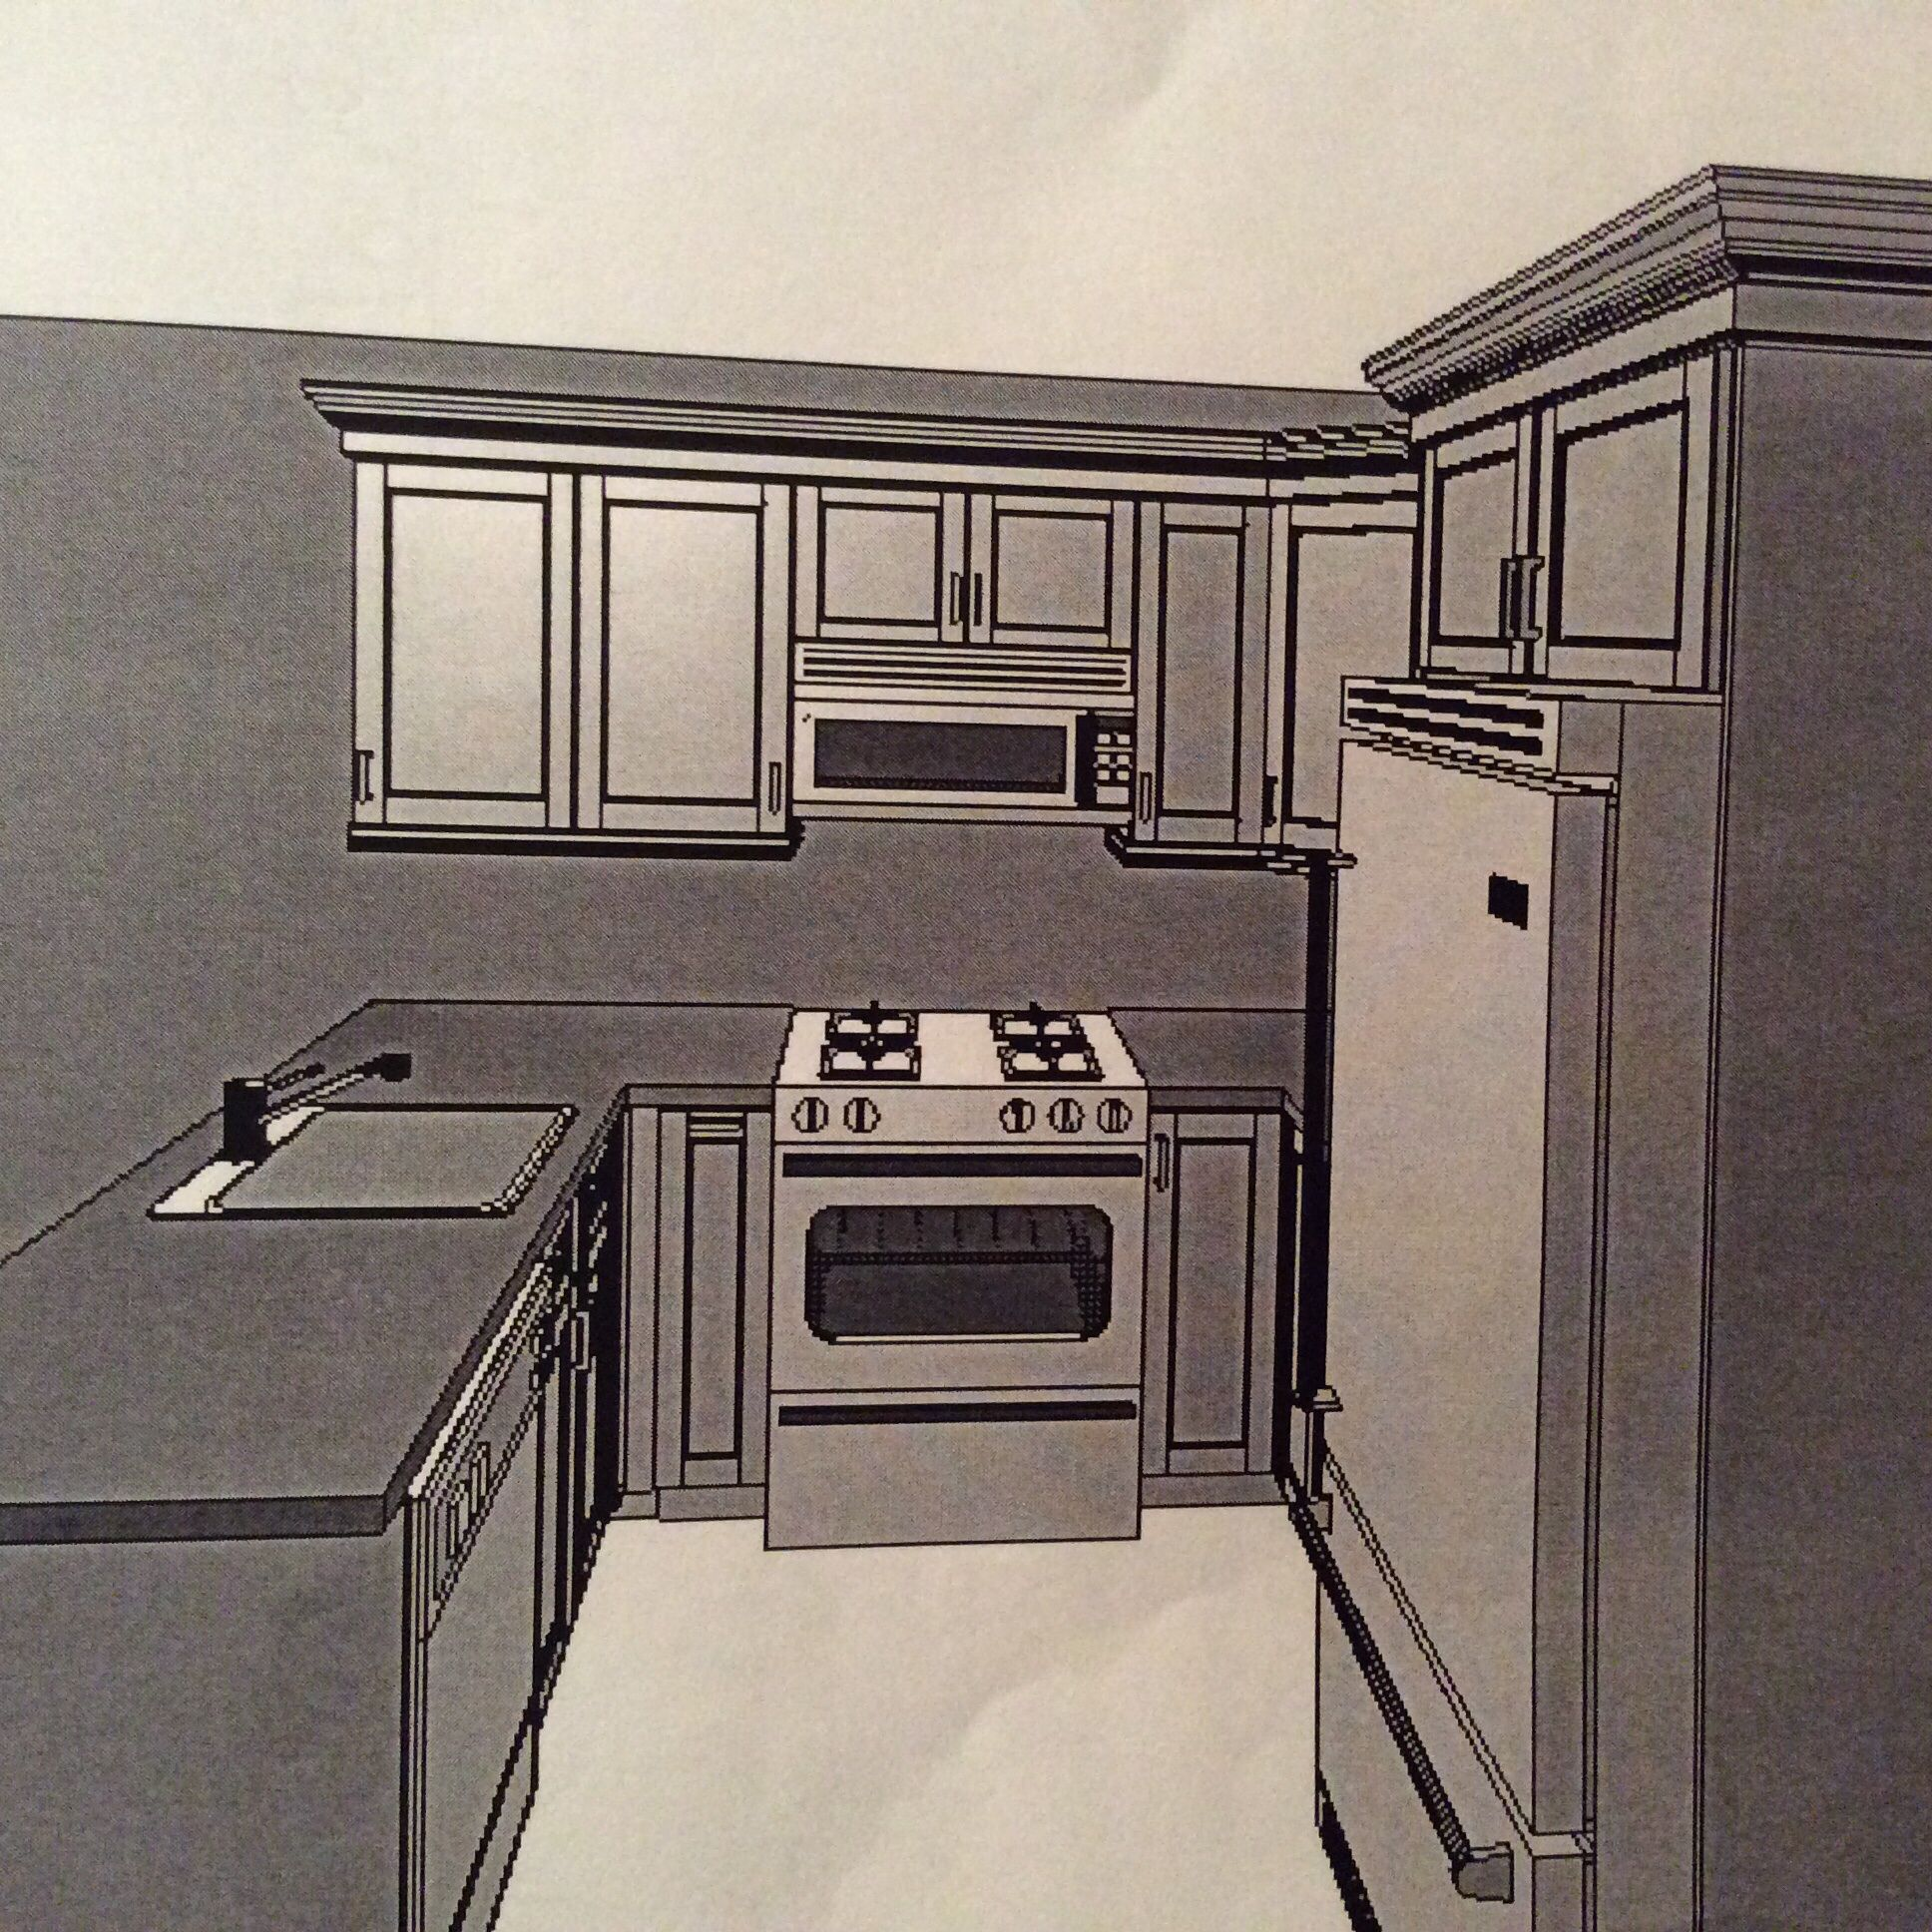 Rona Kitchen Cabinets Rona Design Using Orchard Park Cabinetry For Kitchen Dw To Be